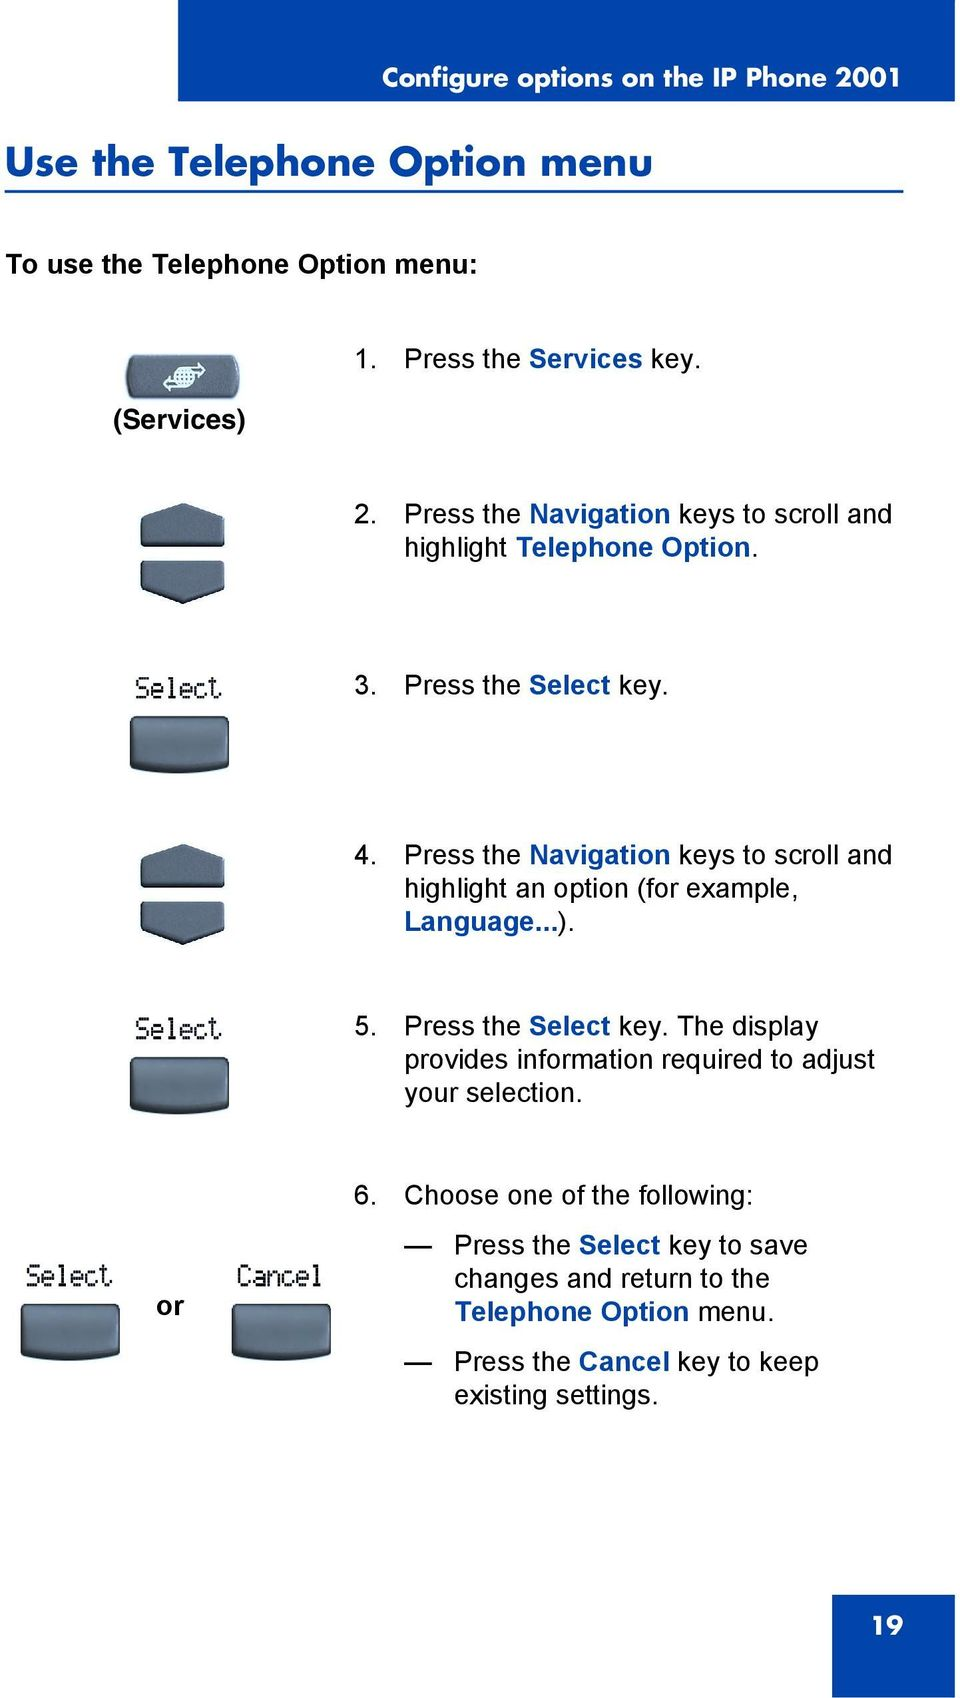 or 6. Choose one of the following: Press the Select key to save changes and return to the Telephone Option menu.